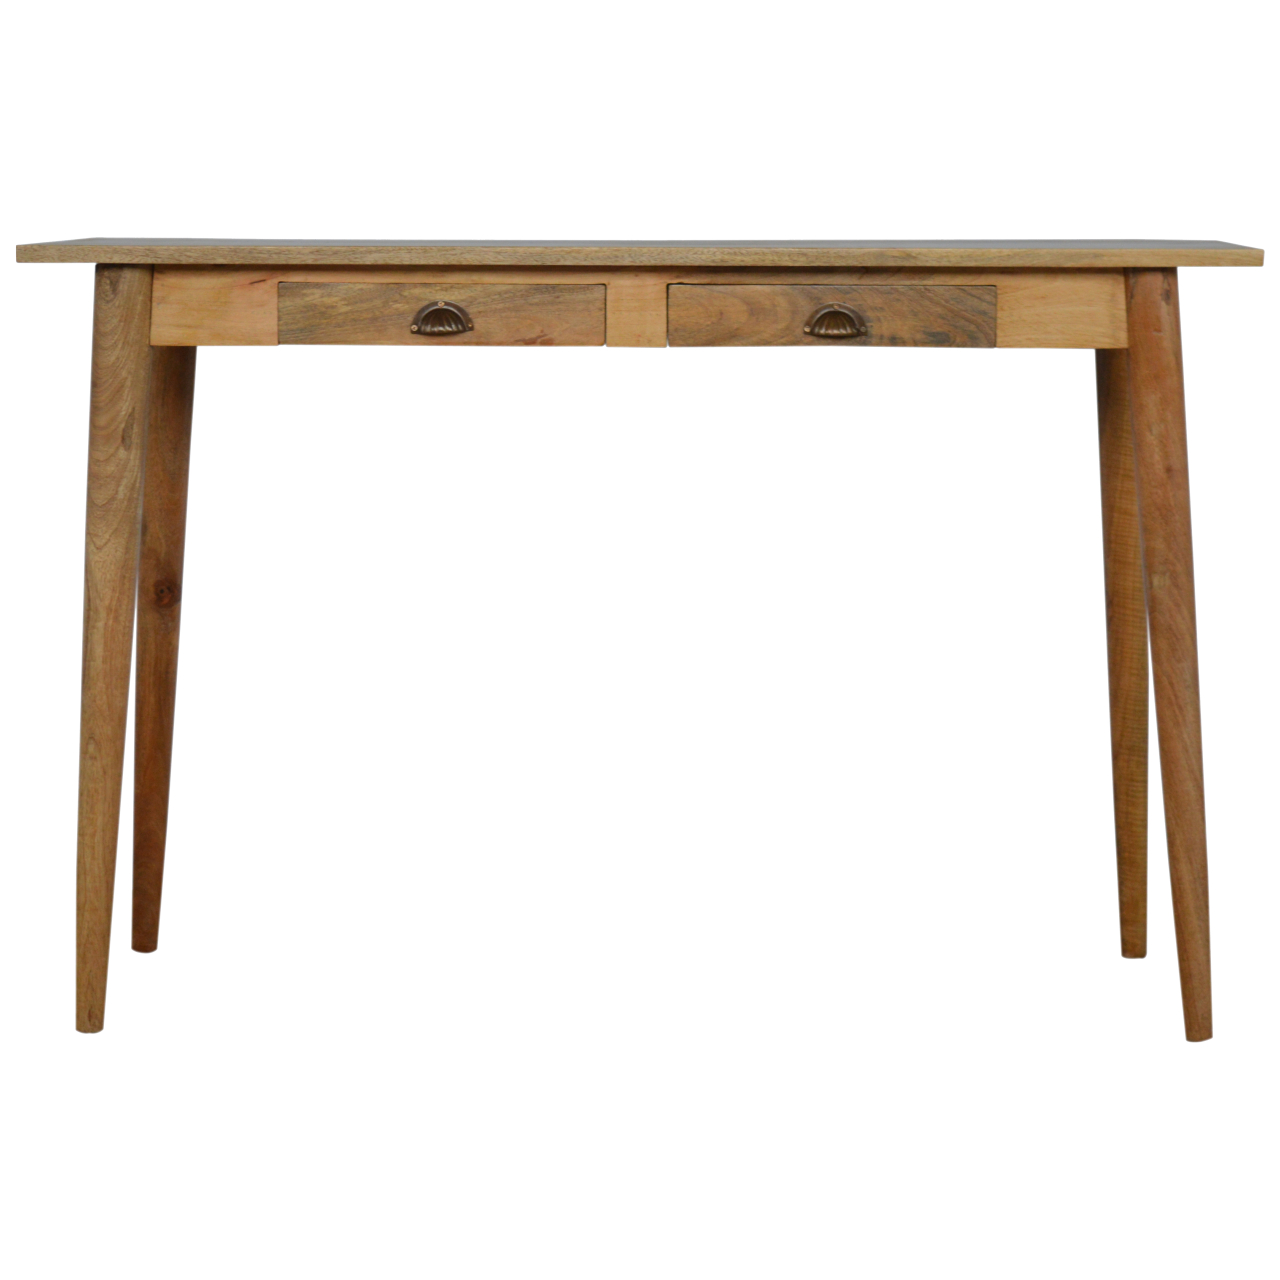 IN168 Nordic Styled Writing Desk with 2 Drawers